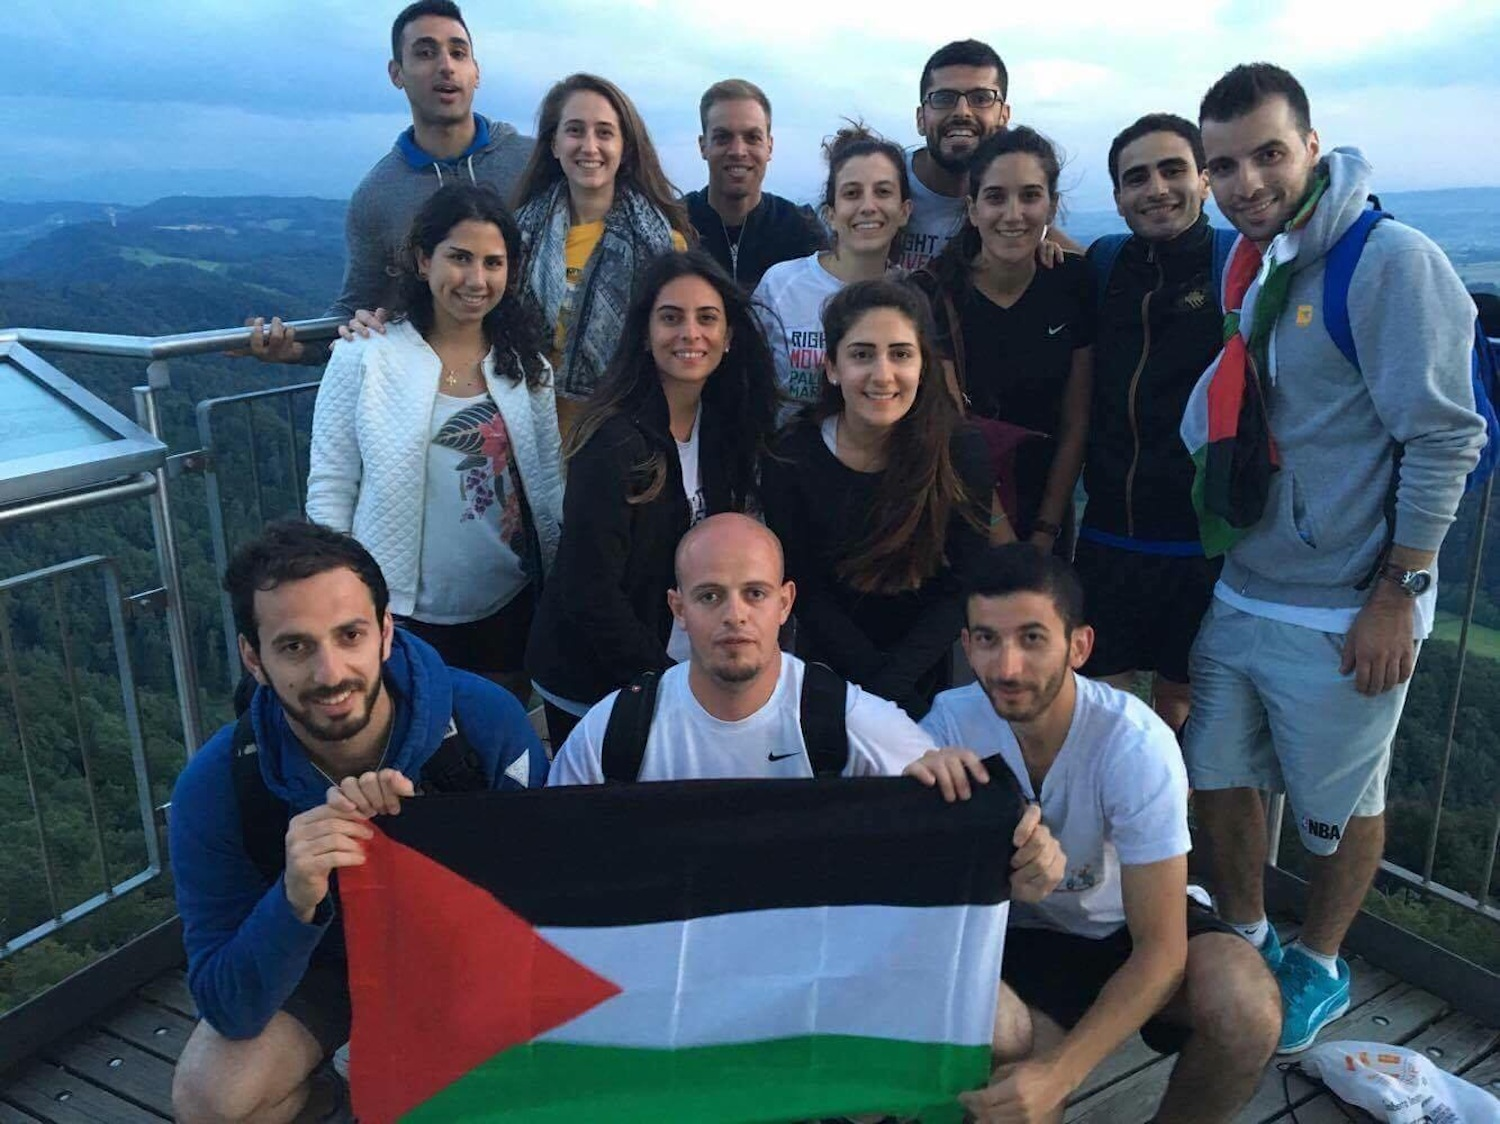 Palestinian marathoners from Right to Movement